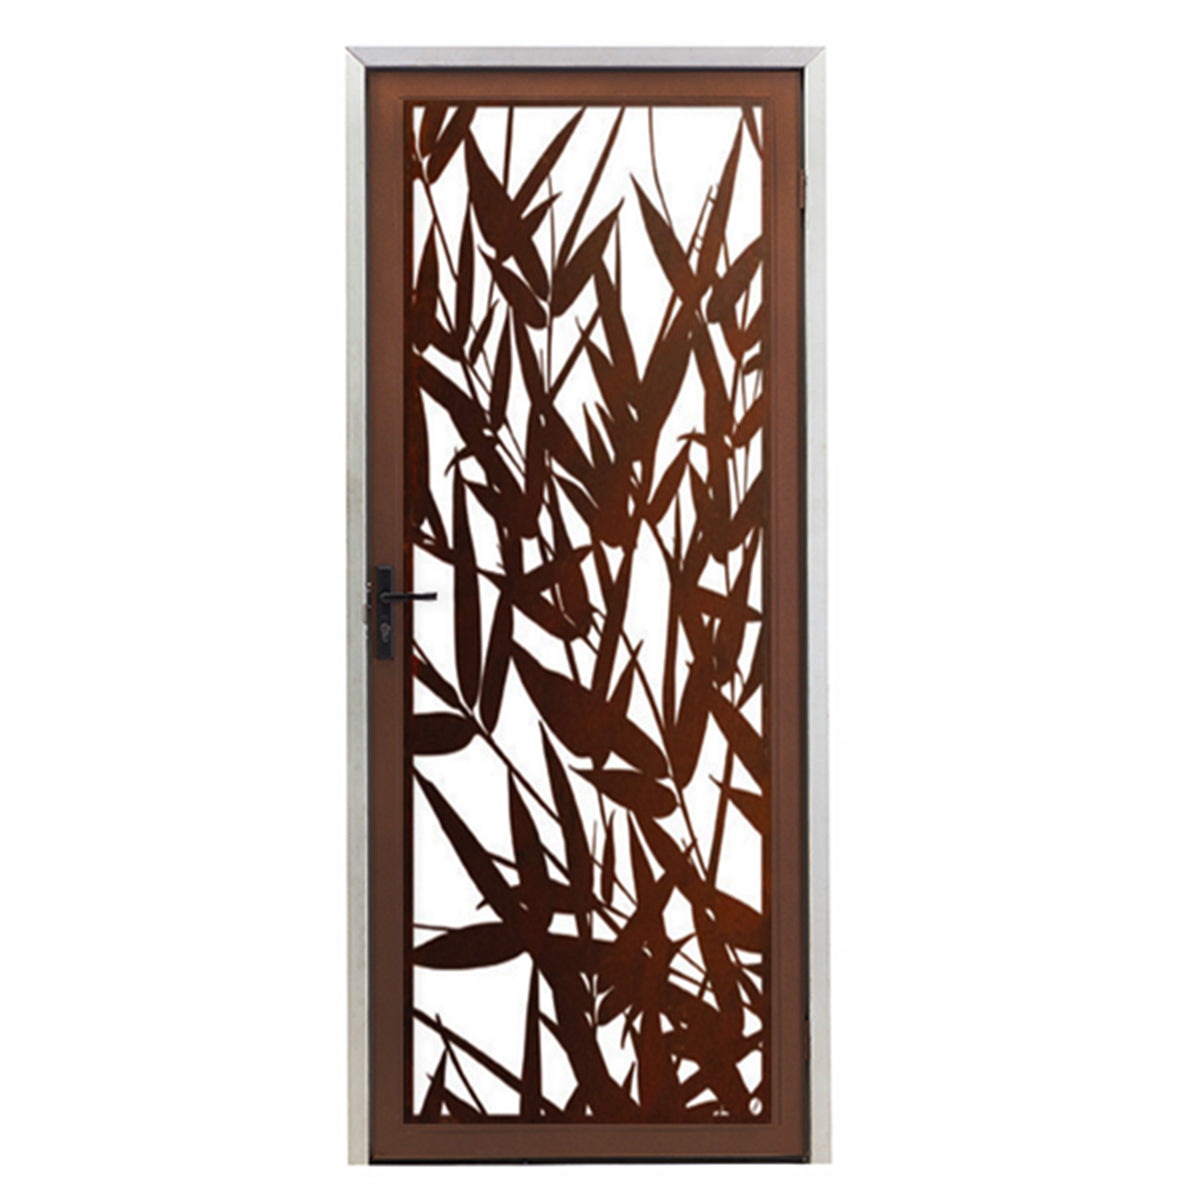 Bamboo Leaves Screen Door